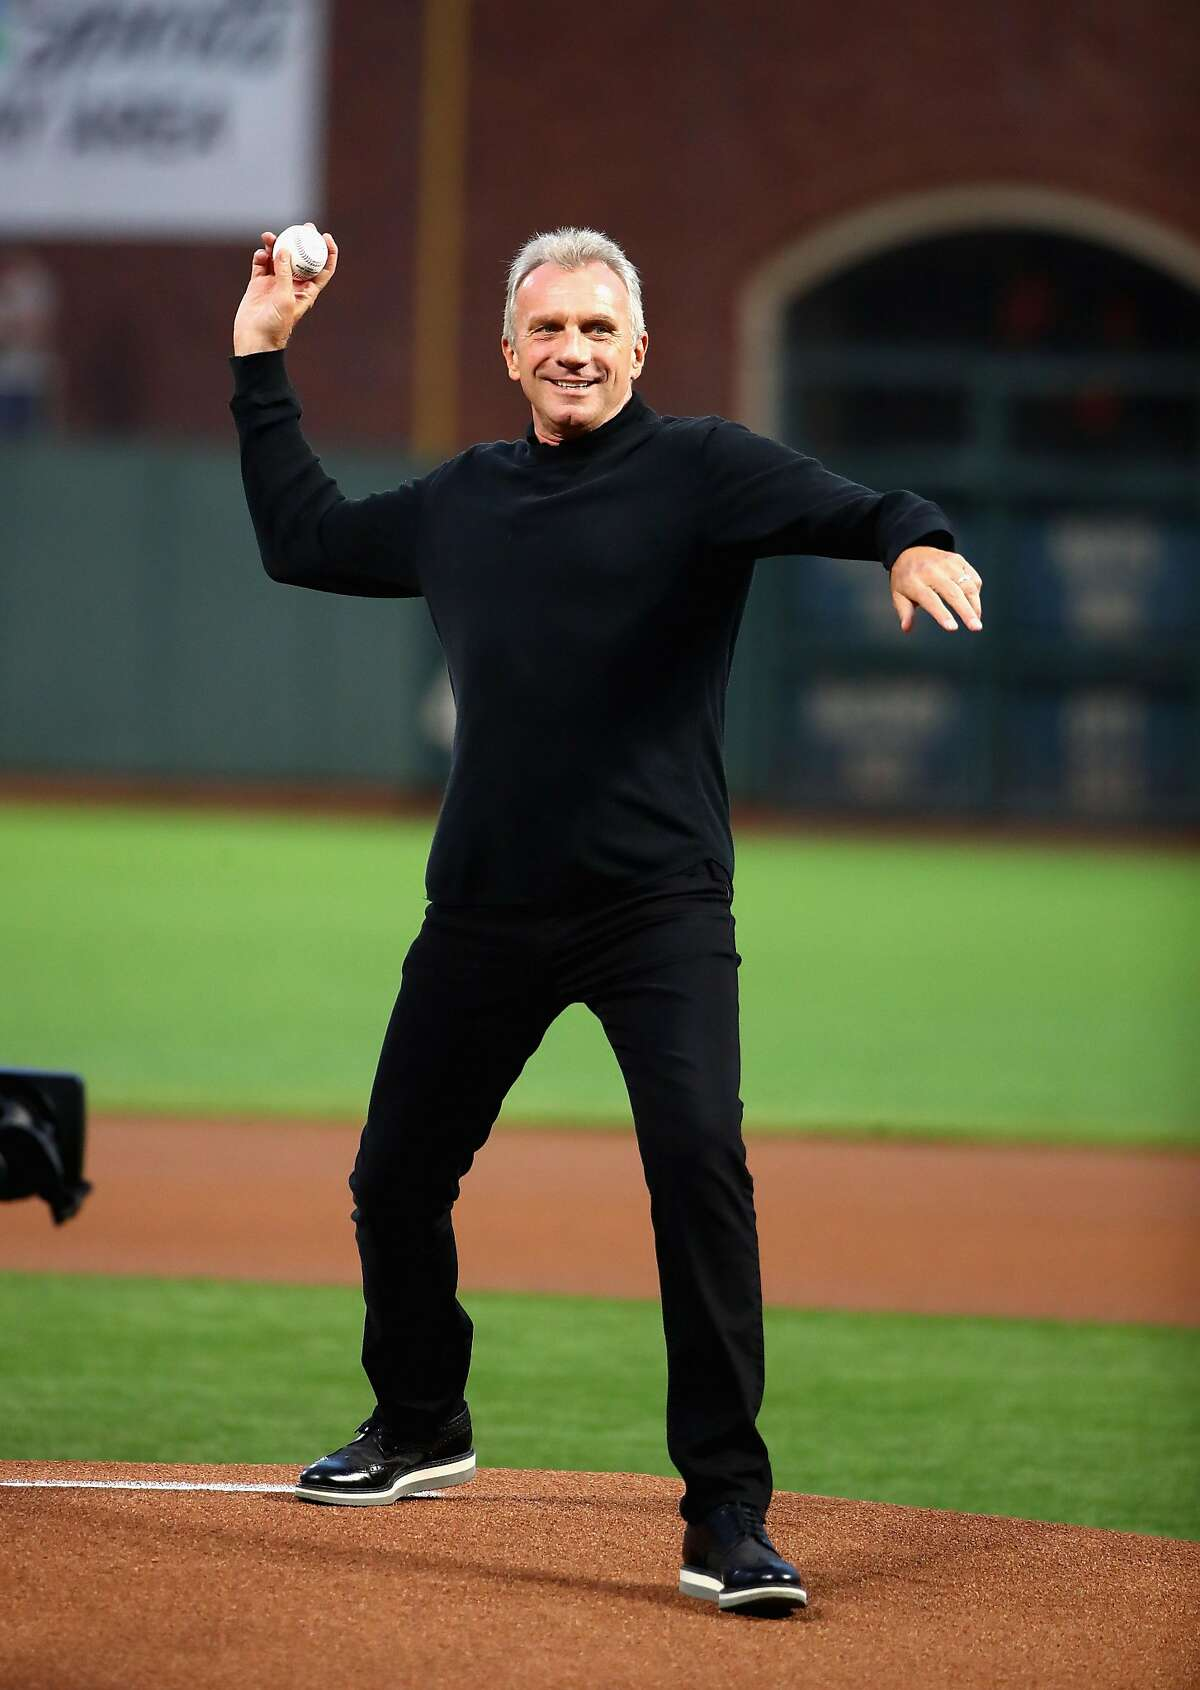 SAN FRANCISCO, CA - SEPTEMBER 12: Former NFL quarterback Joe Montana throws out the ceremonial first pitch before the San Francisco Giants game against the Los Angeles Dodgers at AT&T Park on September 12, 2017 in San Francisco, California. (Photo by Ezra Shaw/Getty Images)